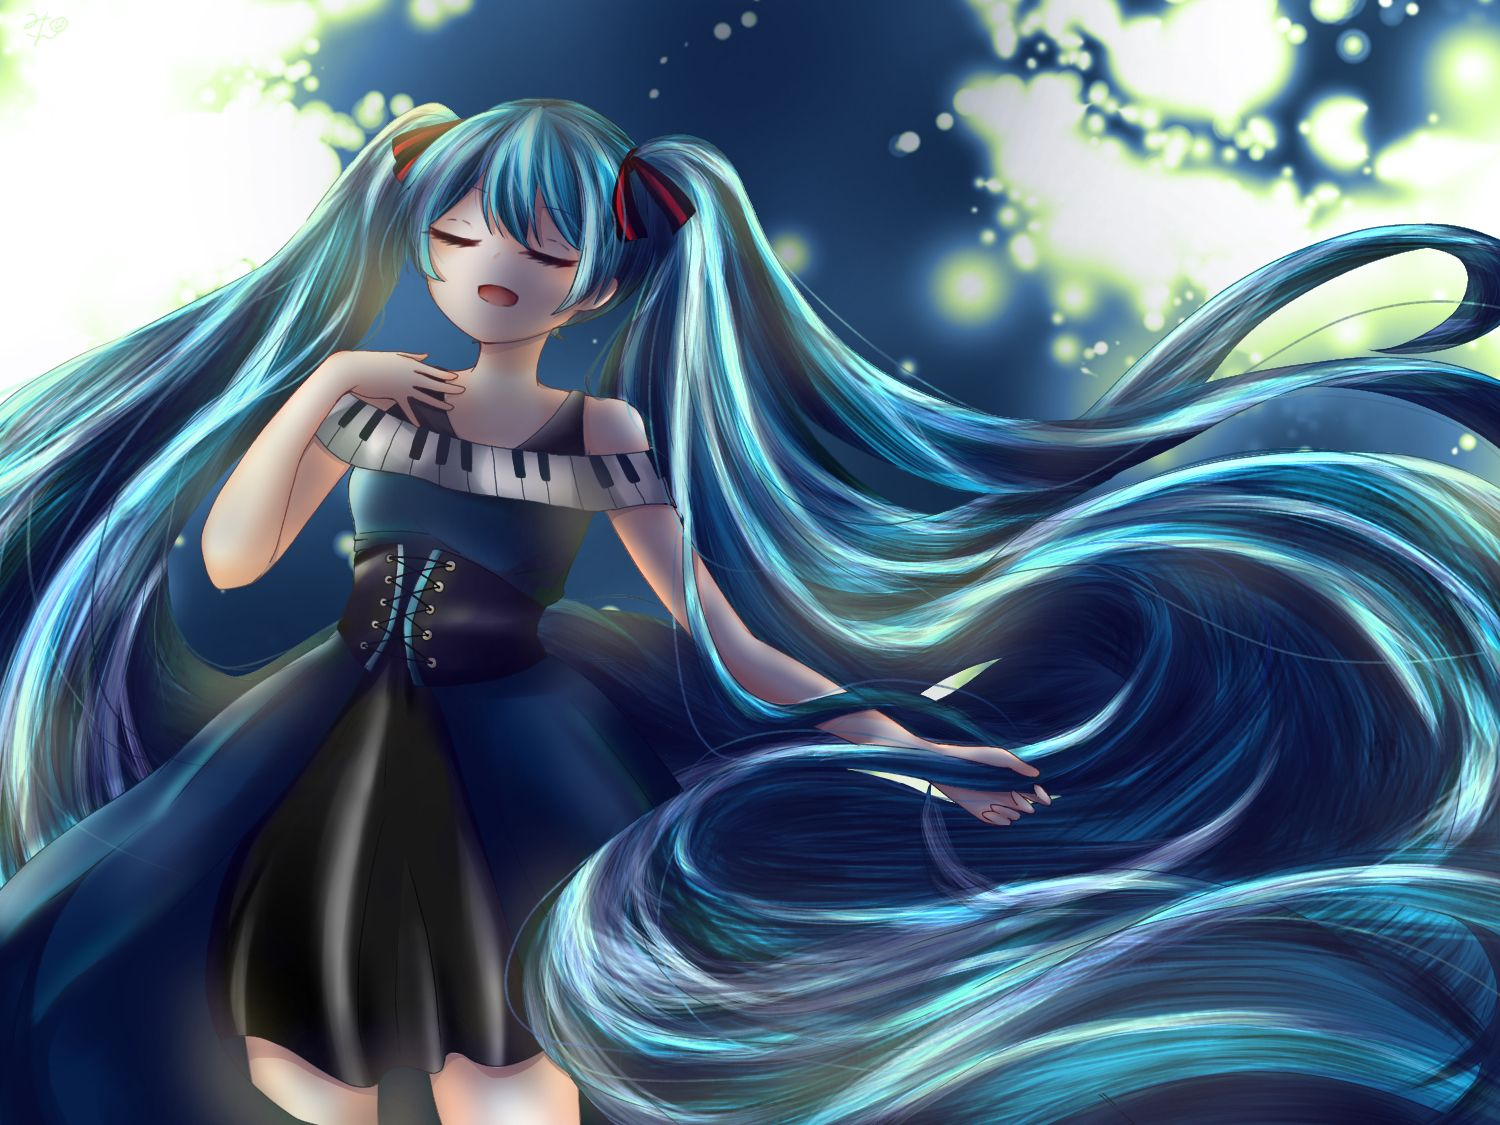 Long Flowing Hair Vocaloid In 2020 Aurora Sleeping Beauty Anime Disney Princess